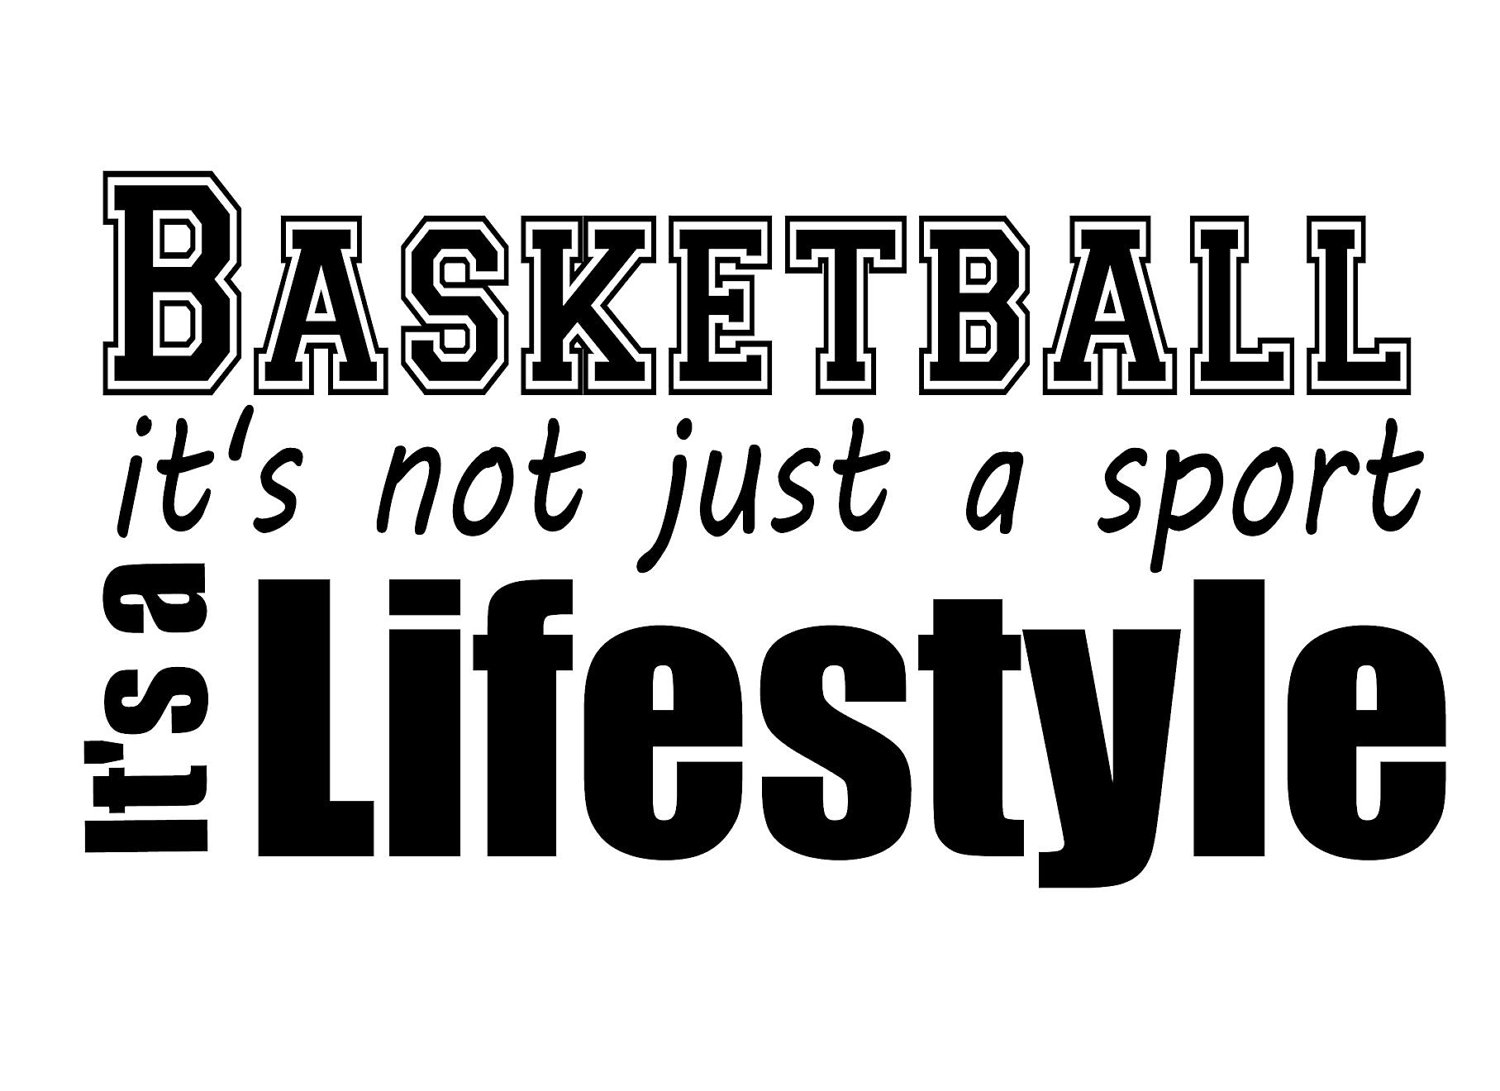 Court Inspiration Basketball Quotes